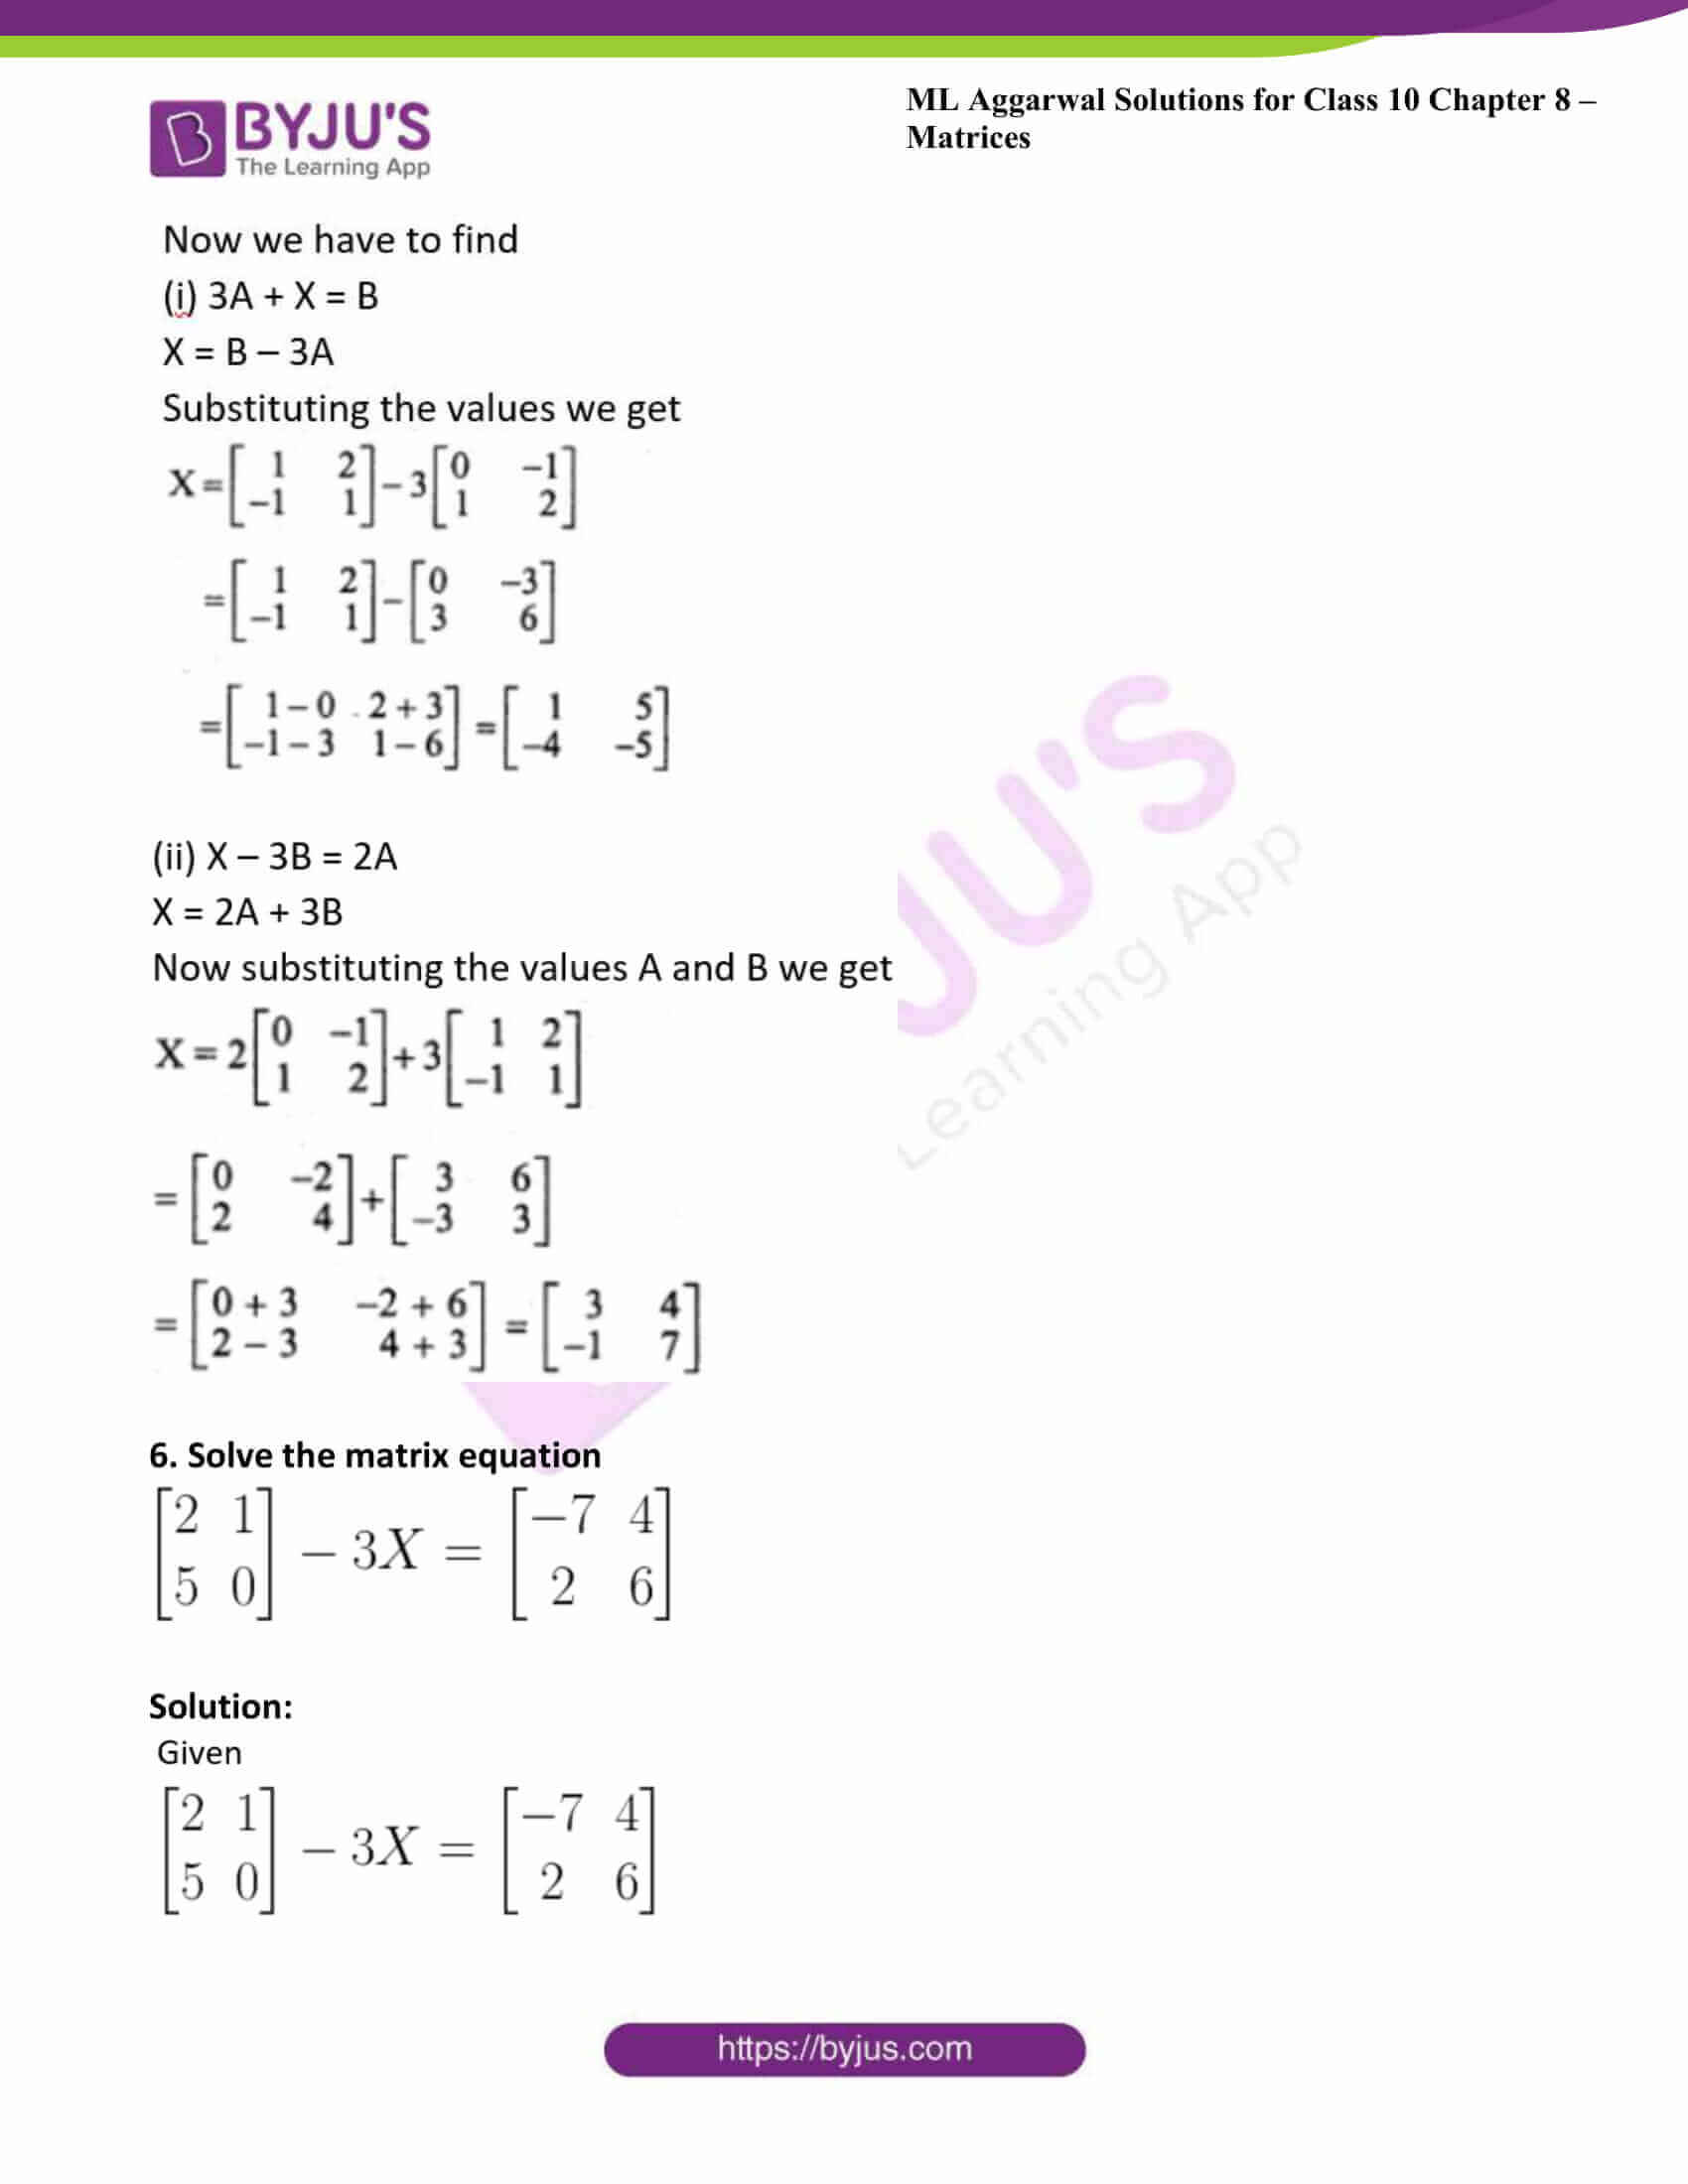 ml aggarwal solutions class 10 maths chapter 8 11